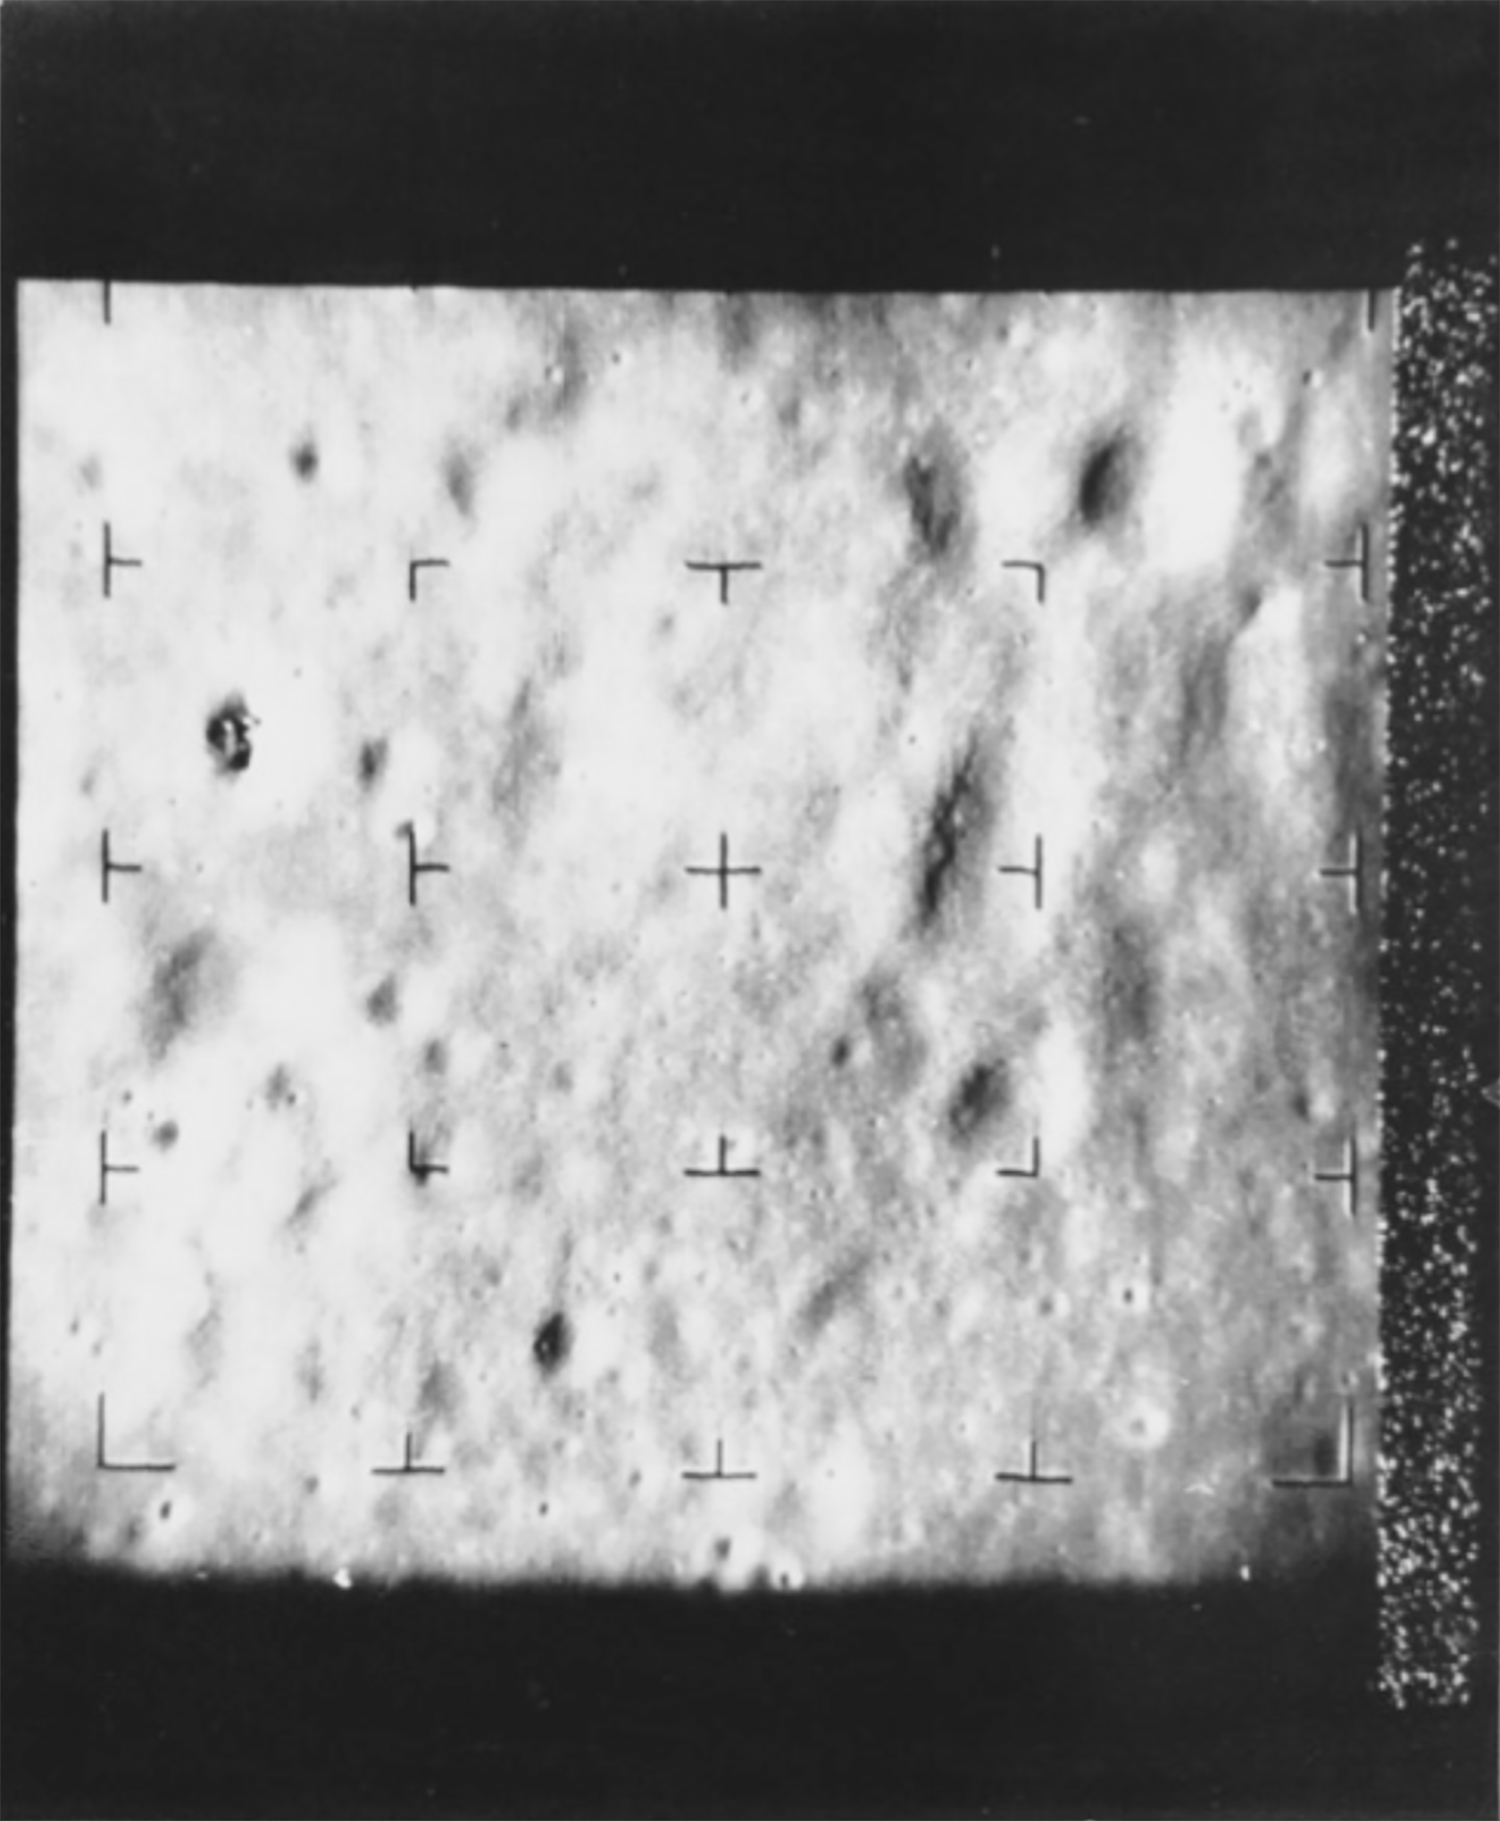 NASA (USA), AP Wirephoto, First Picture of the Moon: This was one of the first pictures of the moon made by Ranger 7 released tonight at Jet Propulsion Laboratory in Pasadena, Calif. Picture shows numerous craters on the surface of the moon which hitherto had not been detected by earth-bound telescopes. 31 July 1964. Collection of Geoffrey Batchen, Wellington.